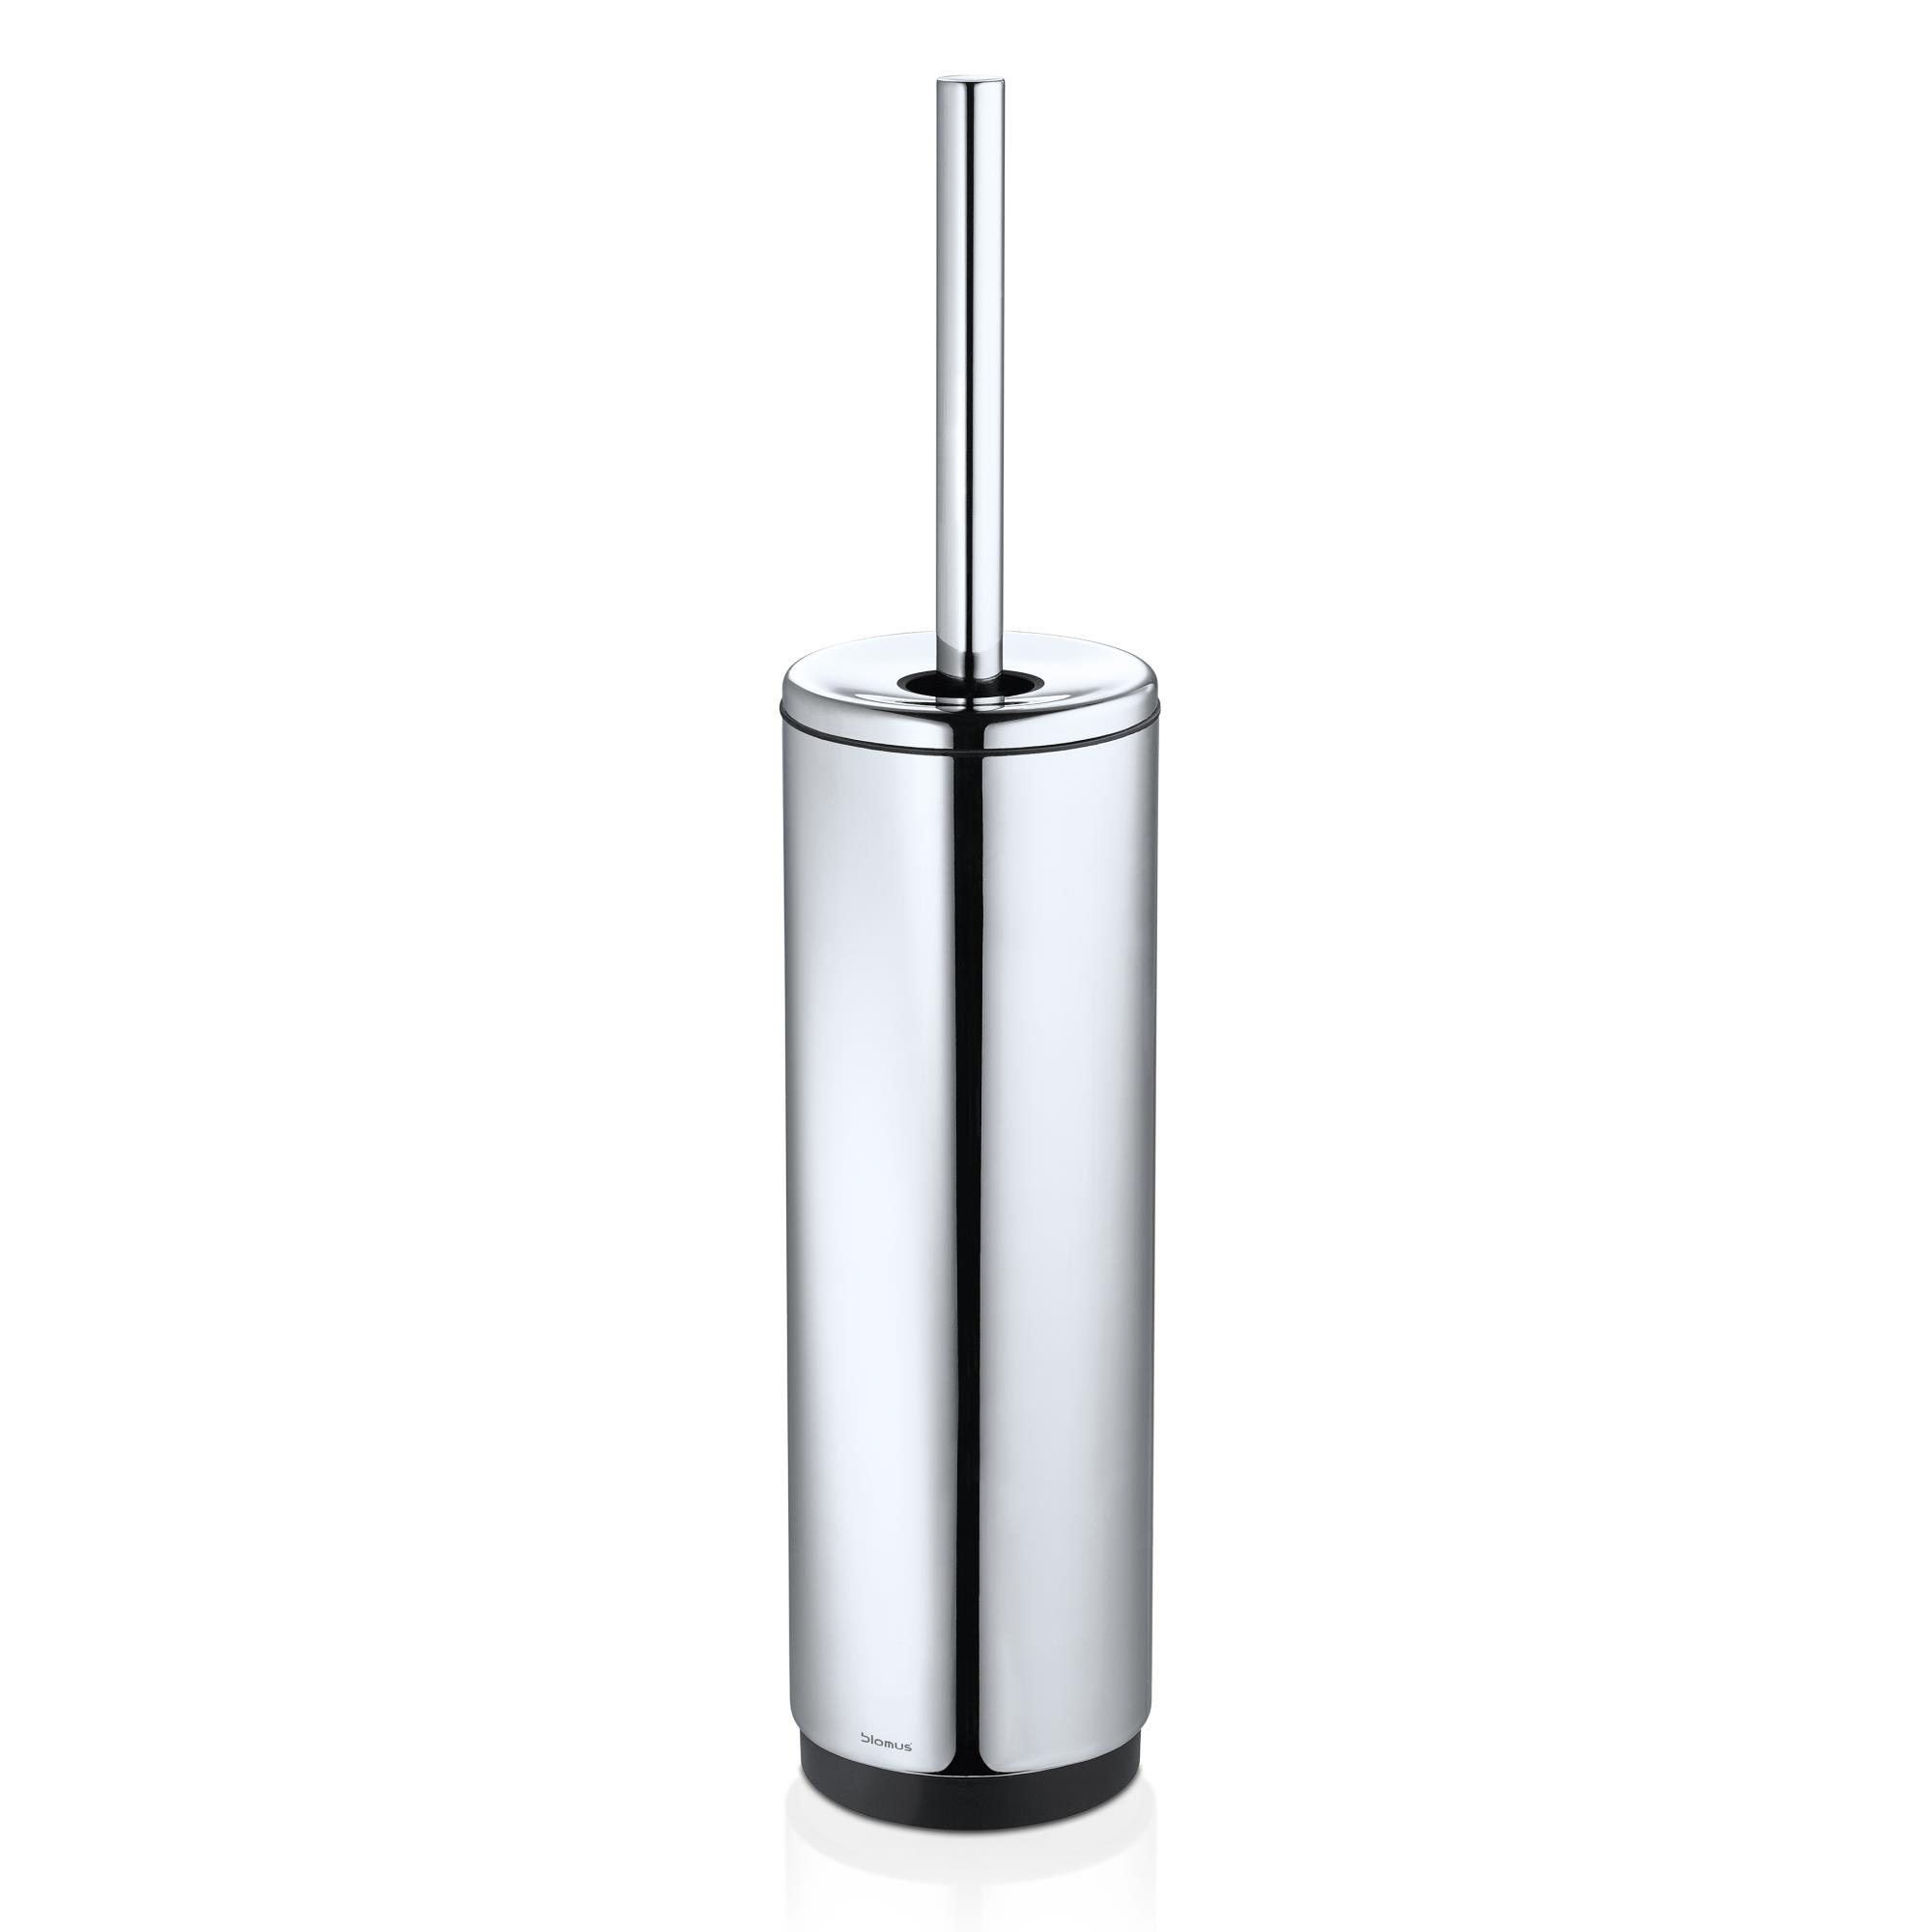 Design Wc Bürste Blomus Pure Spa Toilet Brush Uno Polished